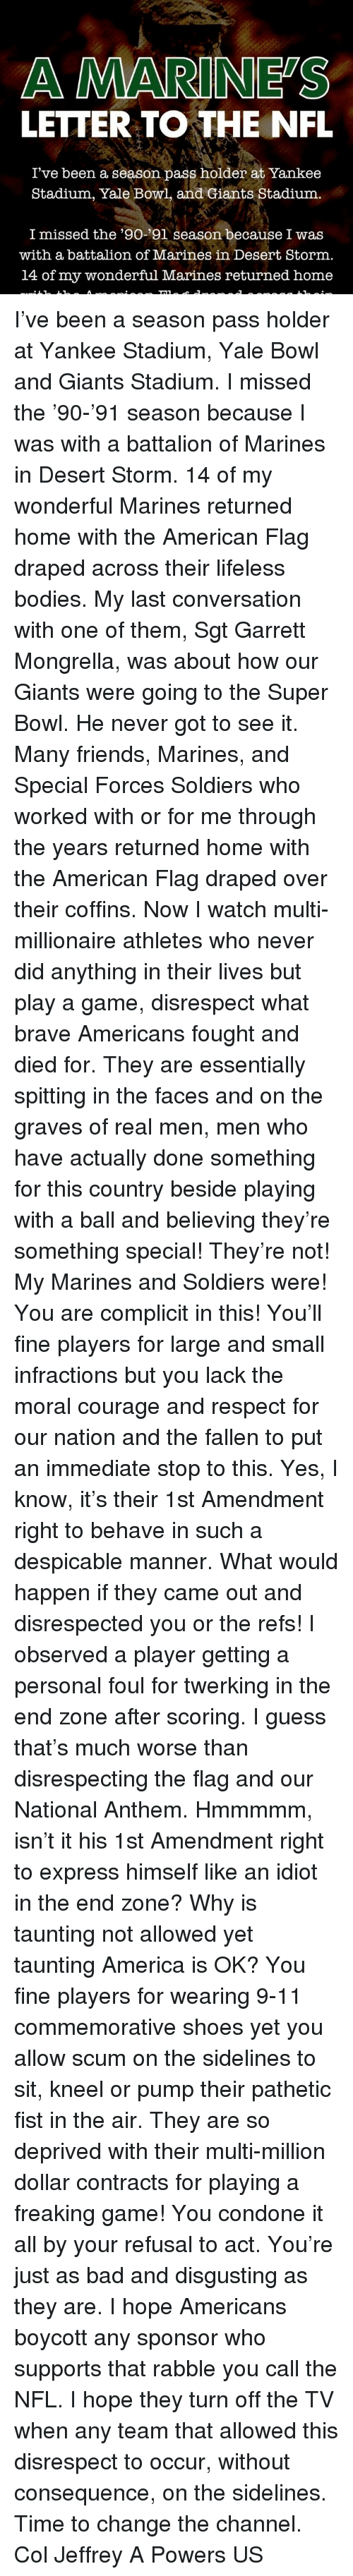 sidelines: A MARINES  LETTER TO THE NFL  I've been a season pass holder at Yankee  Stadium, Yale Bowl, and Giants Stadium  I missed the '90-'91 season because I was  with a battalion of Marines in Desert Storm,  14 of my wonderful Marines returned home I've been a season pass holder at Yankee Stadium, Yale Bowl and Giants Stadium. I missed the '90-'91 season because I was with a battalion of Marines in Desert Storm. 14 of my wonderful Marines returned home with the American Flag draped across their lifeless bodies. My last conversation with one of them, Sgt Garrett Mongrella, was about how our Giants were going to the Super Bowl. He never got to see it. Many friends, Marines, and Special Forces Soldiers who worked with or for me through the years returned home with the American Flag draped over their coffins. Now I watch multi-millionaire athletes who never did anything in their lives but play a game, disrespect what brave Americans fought and died for. They are essentially spitting in the faces and on the graves of real men, men who have actually done something for this country beside playing with a ball and believing they're something special! They're not! My Marines and Soldiers were! You are complicit in this! You'll fine players for large and small infractions but you lack the moral courage and respect for our nation and the fallen to put an immediate stop to this. Yes, I know, it's their 1st Amendment right to behave in such a despicable manner. What would happen if they came out and disrespected you or the refs! I observed a player getting a personal foul for twerking in the end zone after scoring. I guess that's much worse than disrespecting the flag and our National Anthem. Hmmmmm, isn't it his 1st Amendment right to express himself like an idiot in the end zone? Why is taunting not allowed yet taunting America is OK? You fine players for wearing 9-11 commemorative shoes yet you allow scum on the sidelines to sit, kneel or pump their pathetic fist in the ai